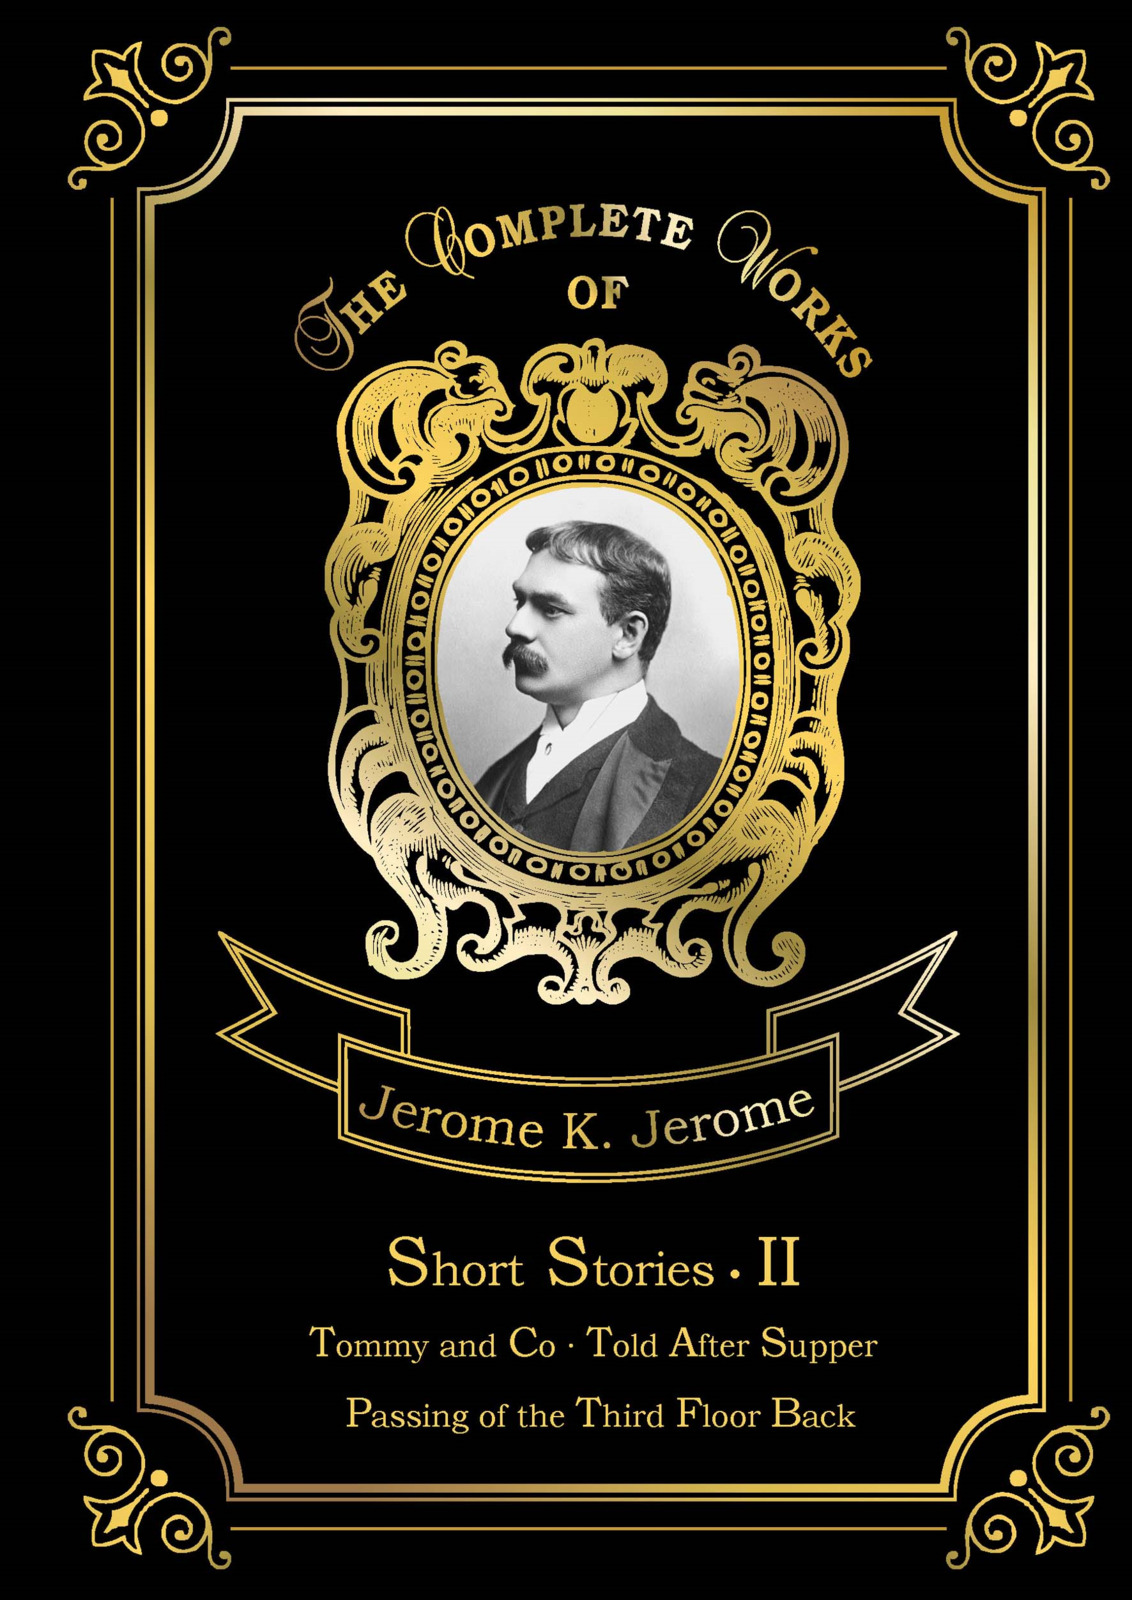 Jerome K. Jerome Short Stories II told after supper